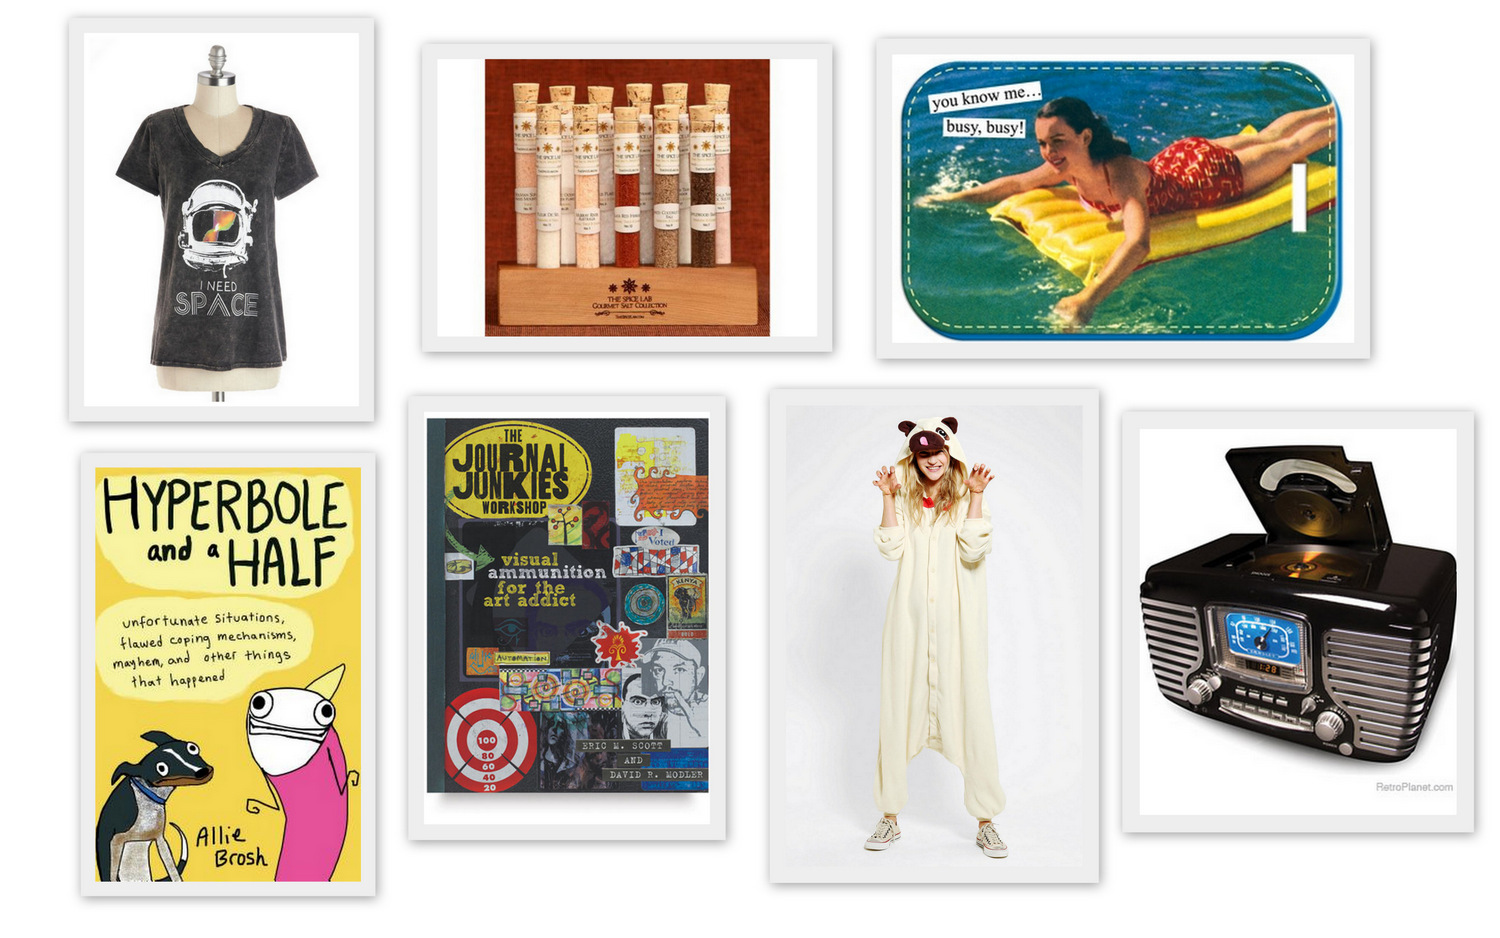 Autostraddle's Ultimate Holiday Gift Guide 2013: What We Really Want